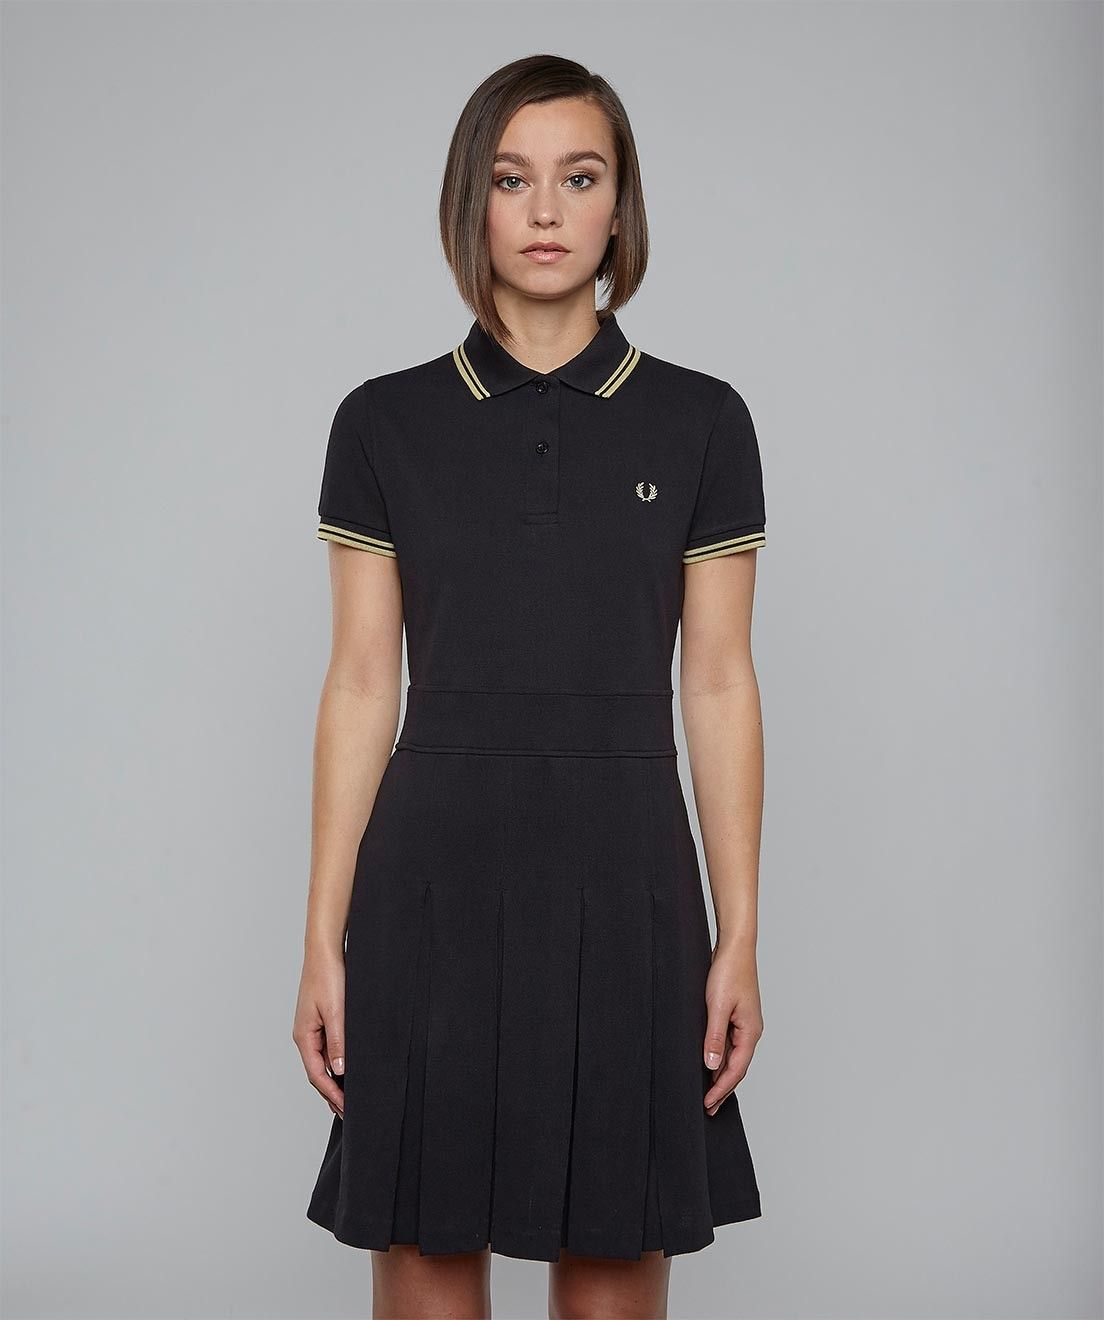 516f1992bc40 Fred Perry Womens Spring/Summer Collection 2015 - Fashion, Style ...